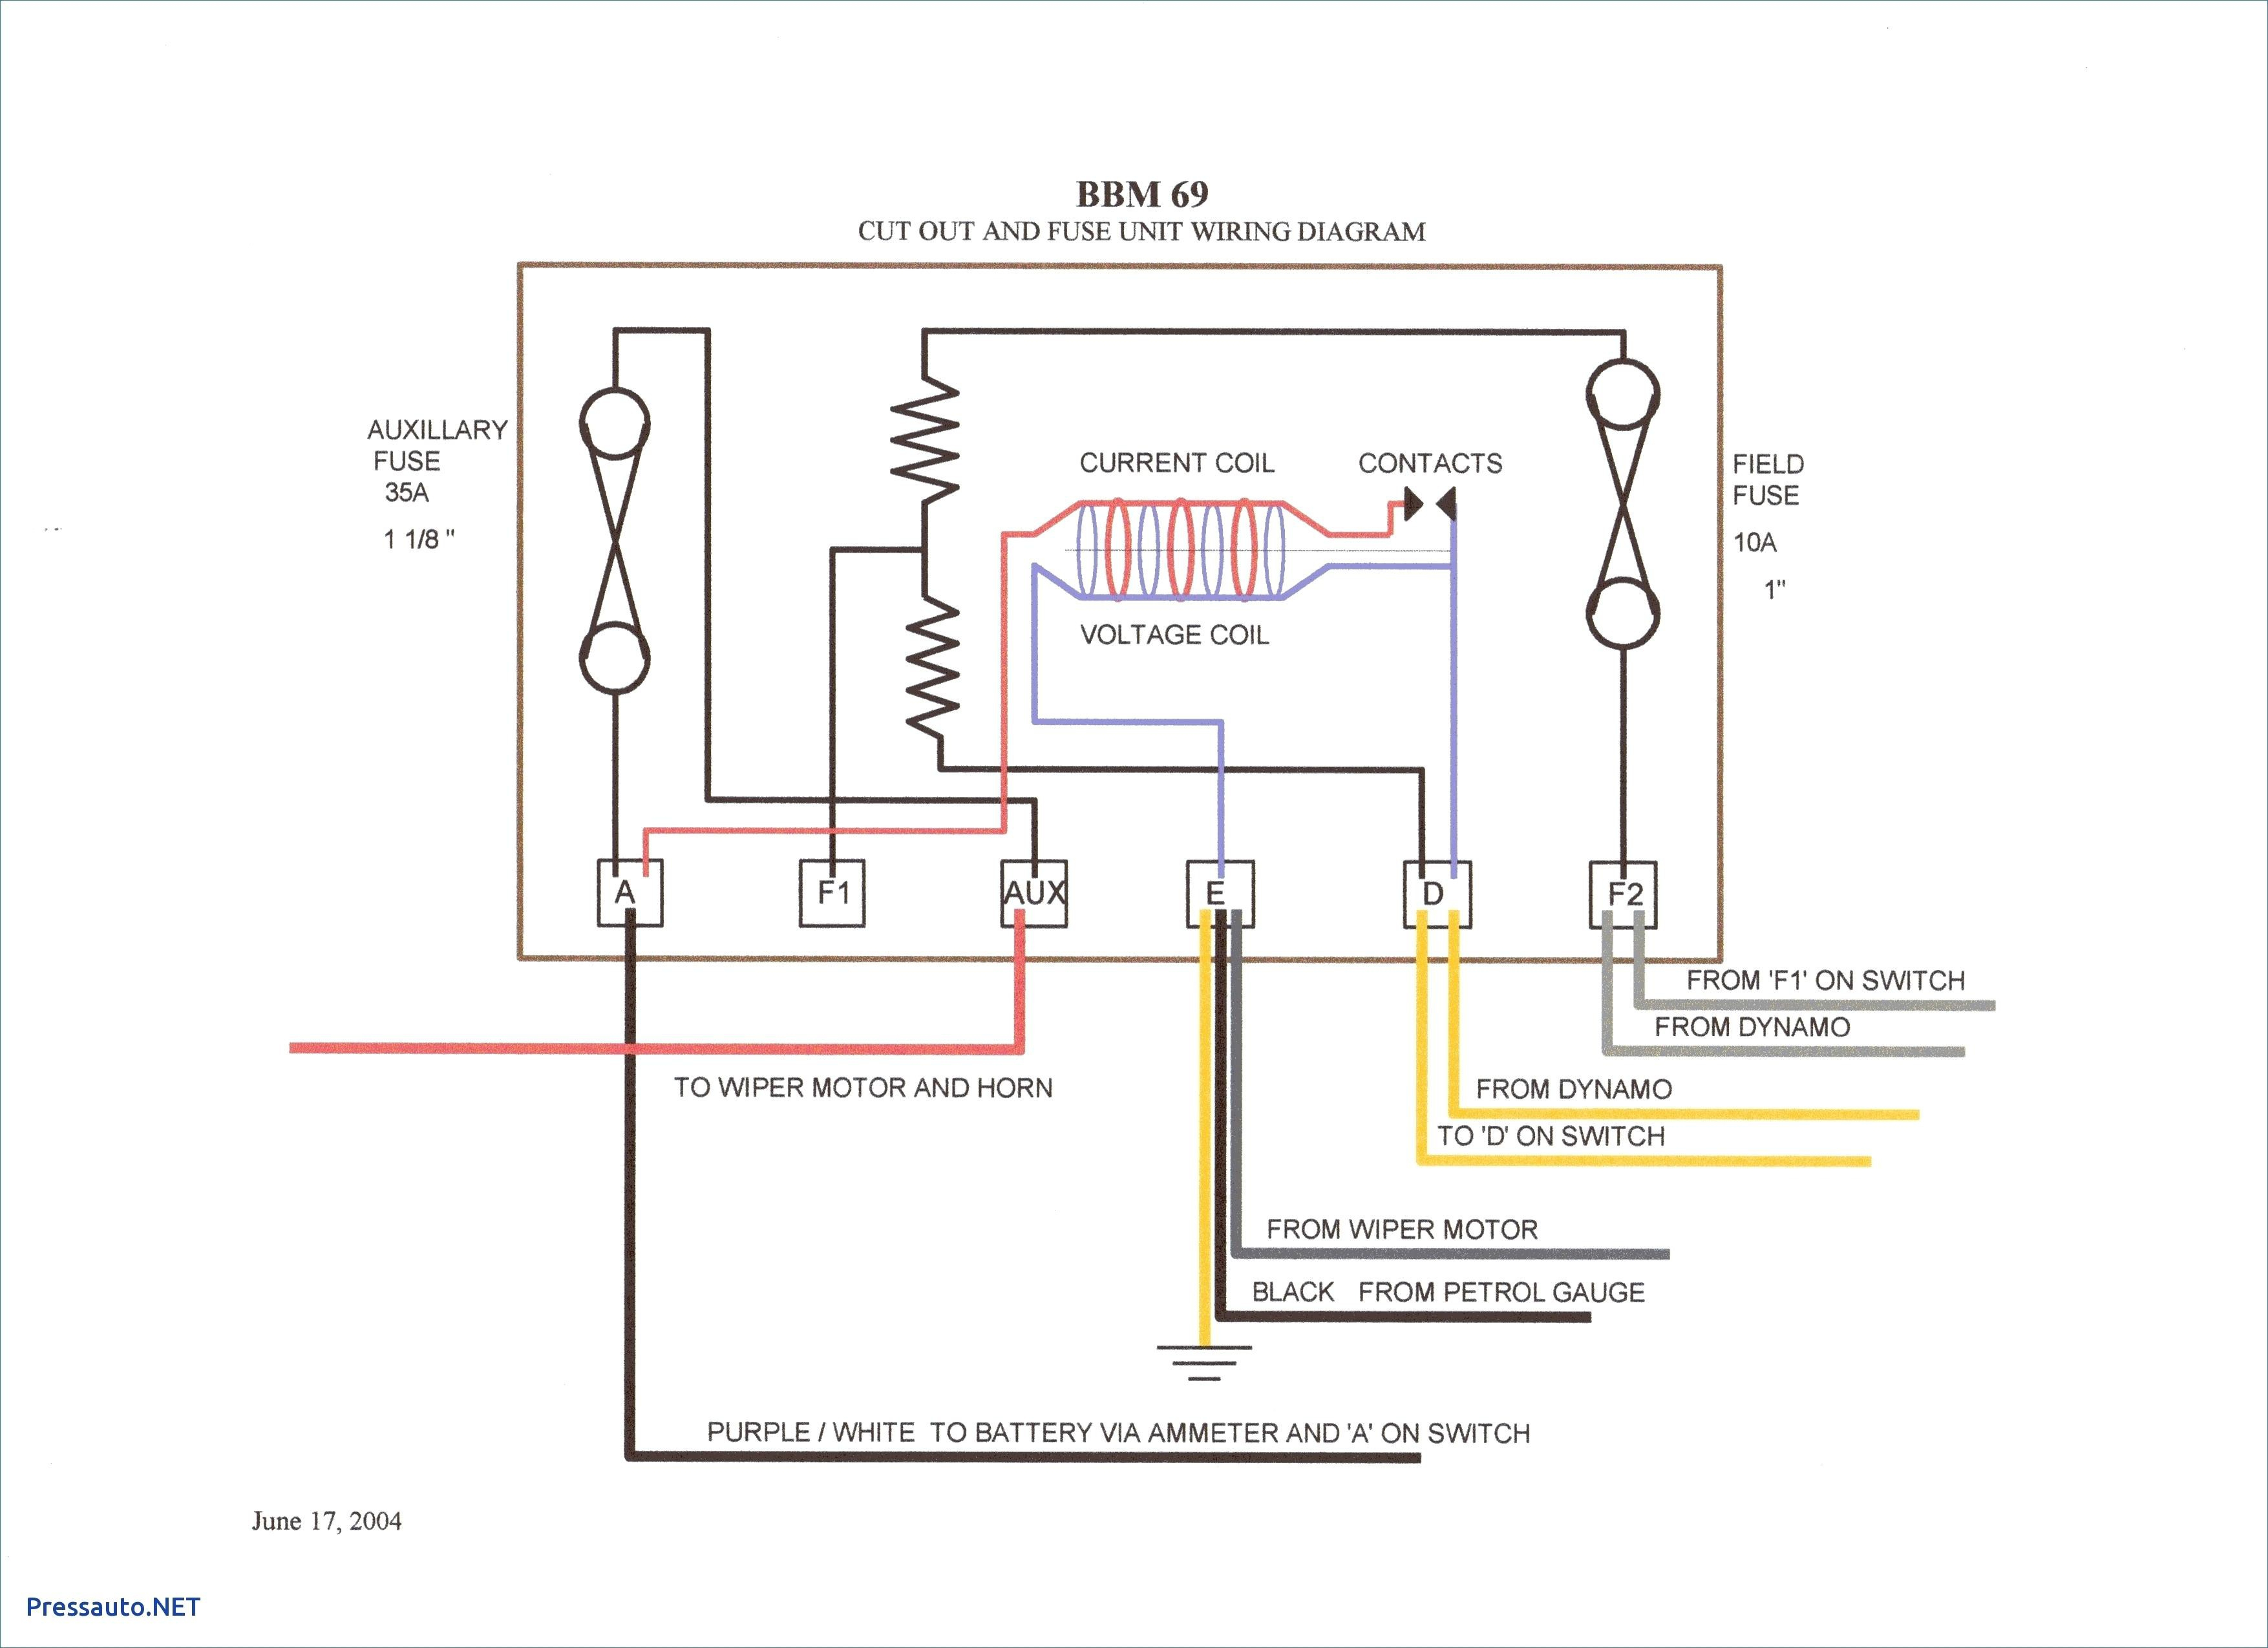 Water Heater Wiring Diagram Dual Element | Wiring Diagram - Water Heater Wiring Diagram Dual Element